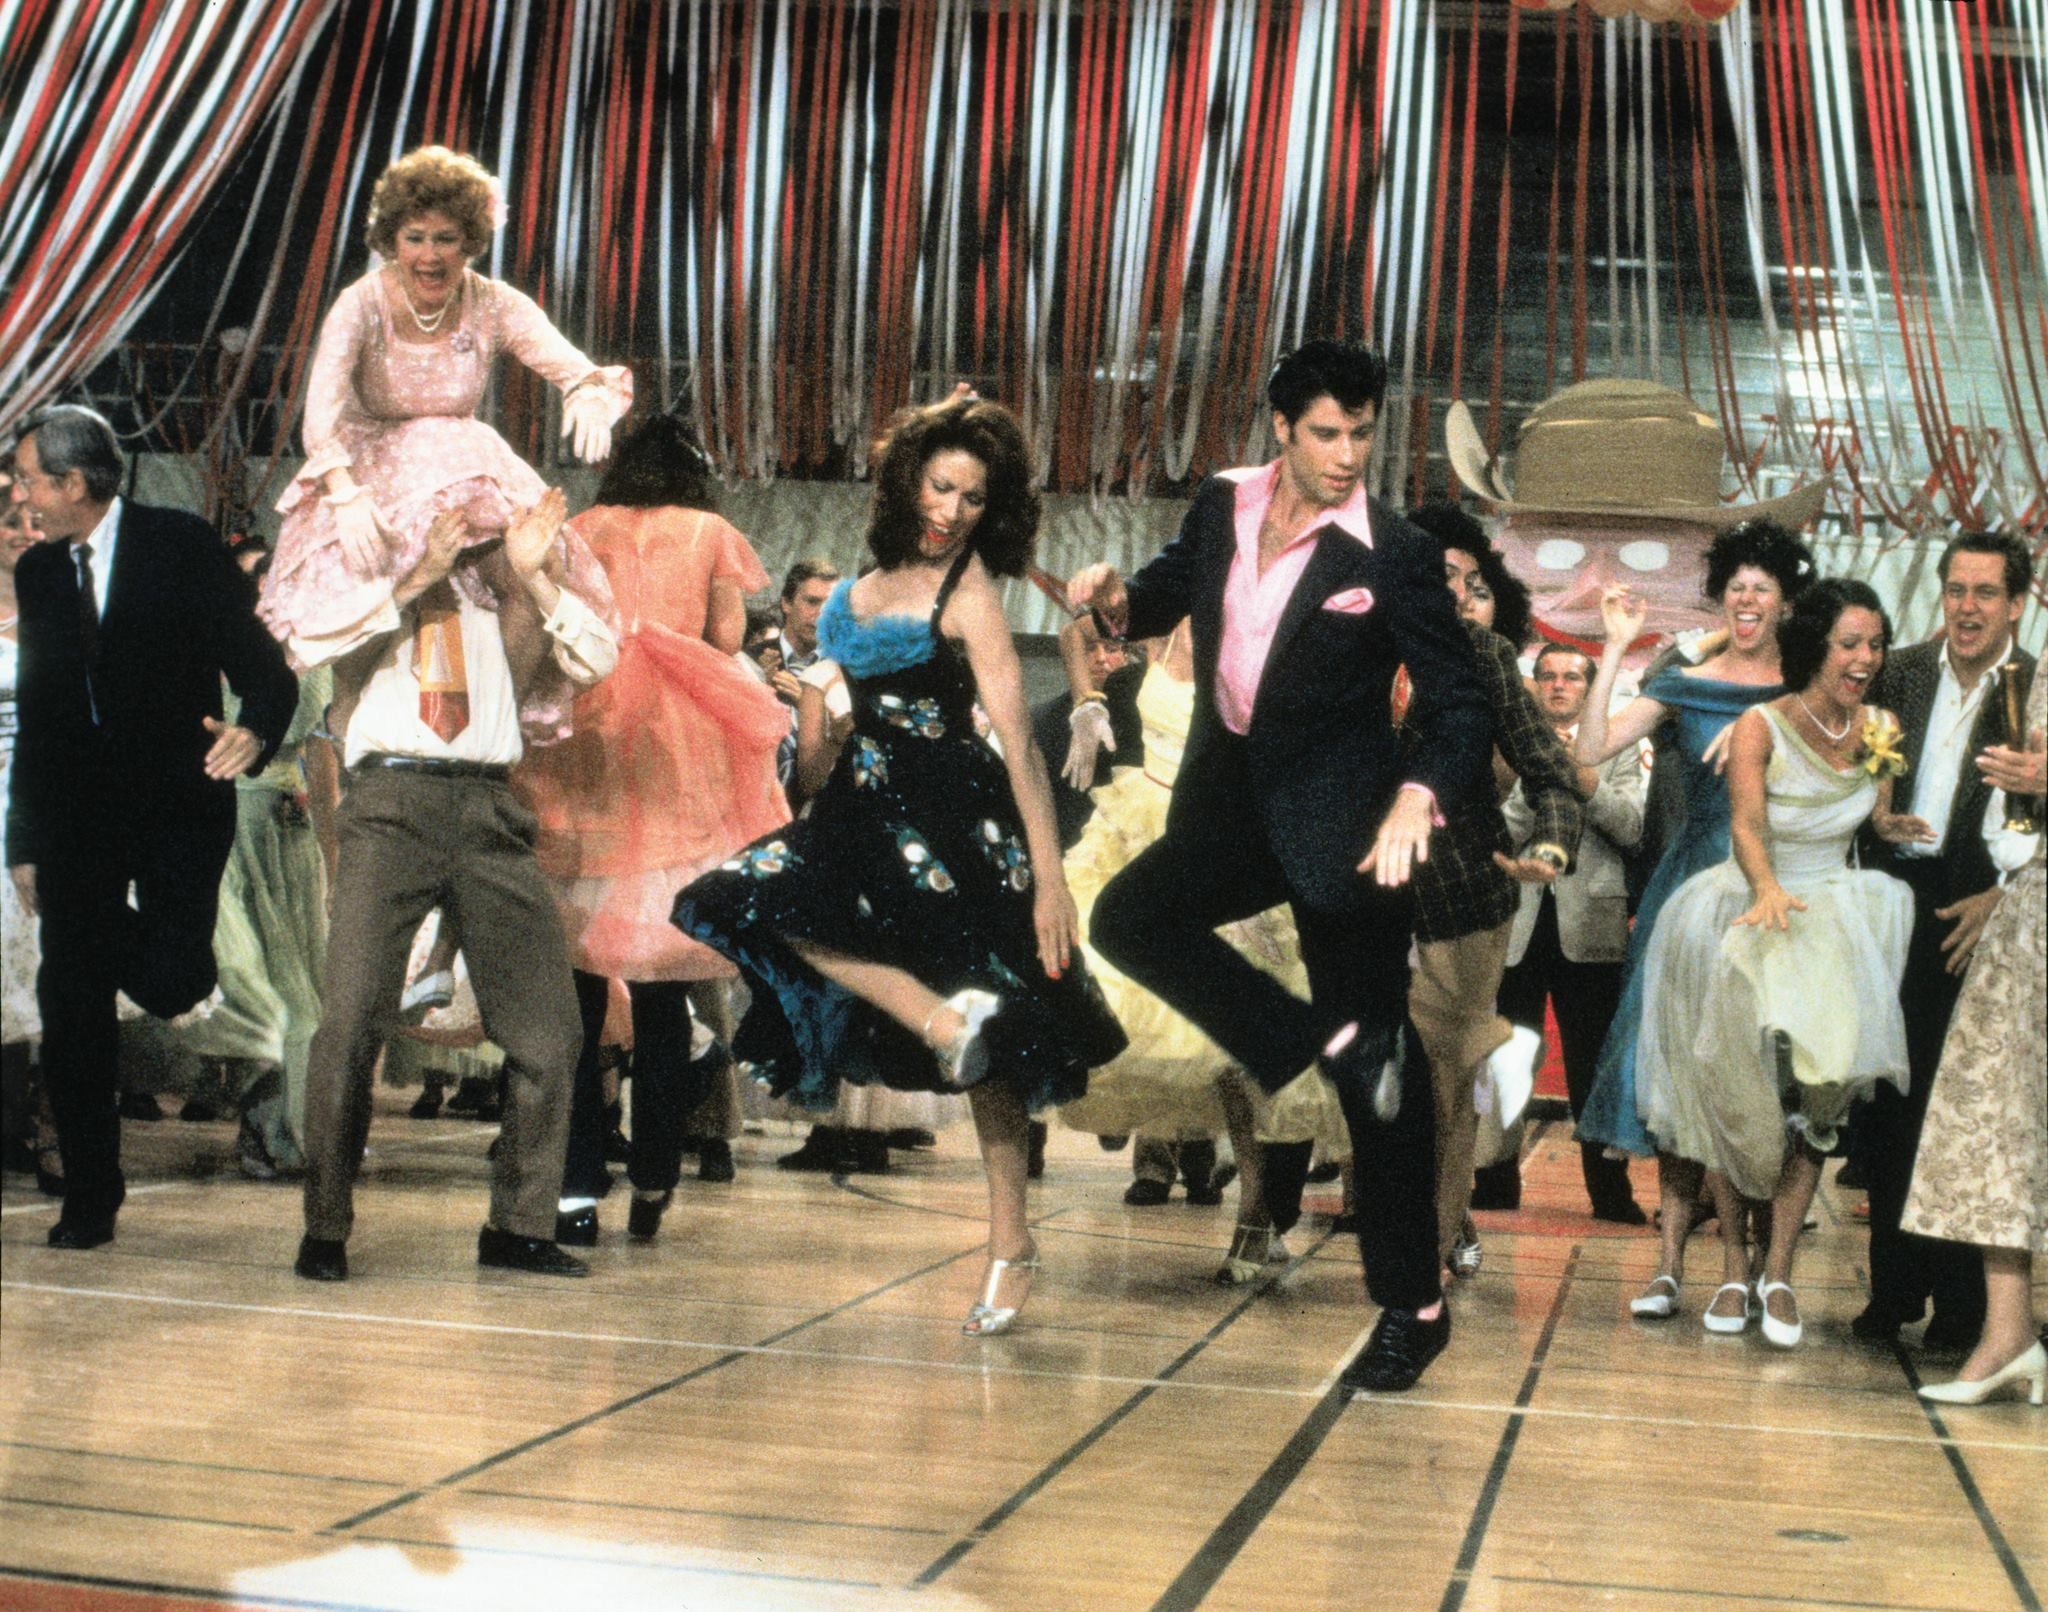 That's the stuff. Born to hand jive, oh yeah! | Grease dance, Grease movie, John  travolta